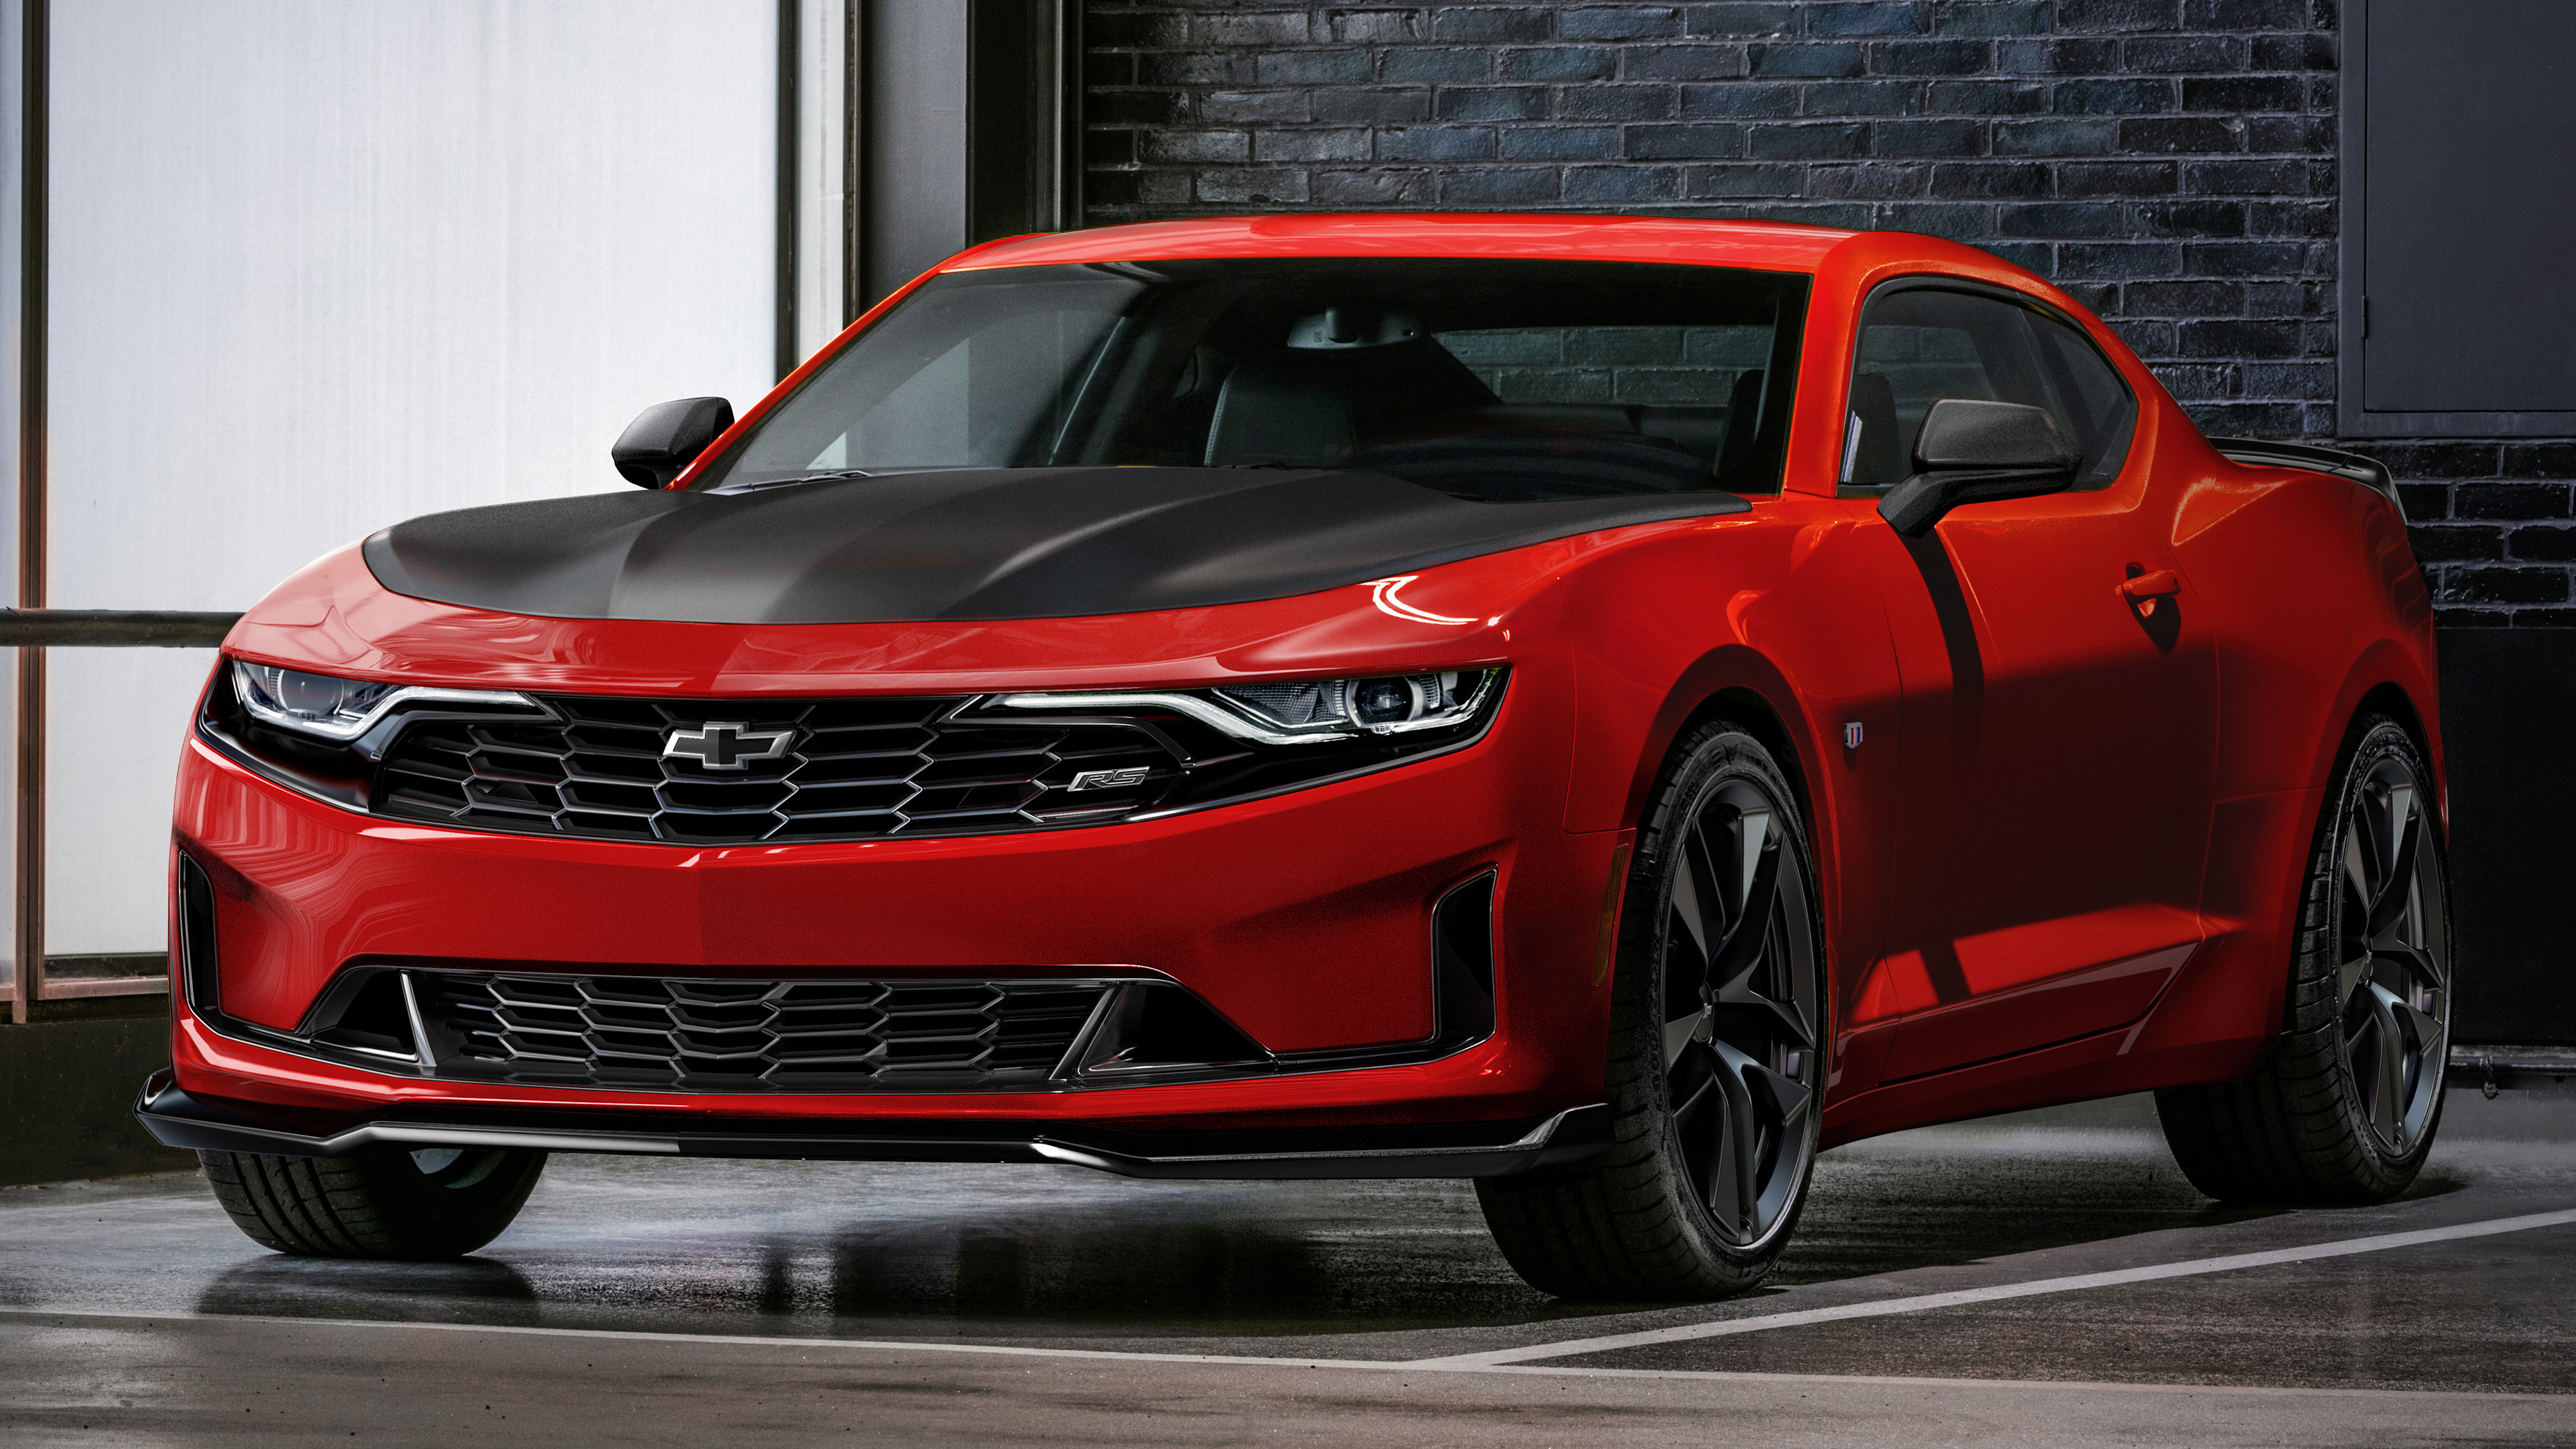 2019 Chevrolet Camaro 2 0l Turbo 1le 10 Spd Auto